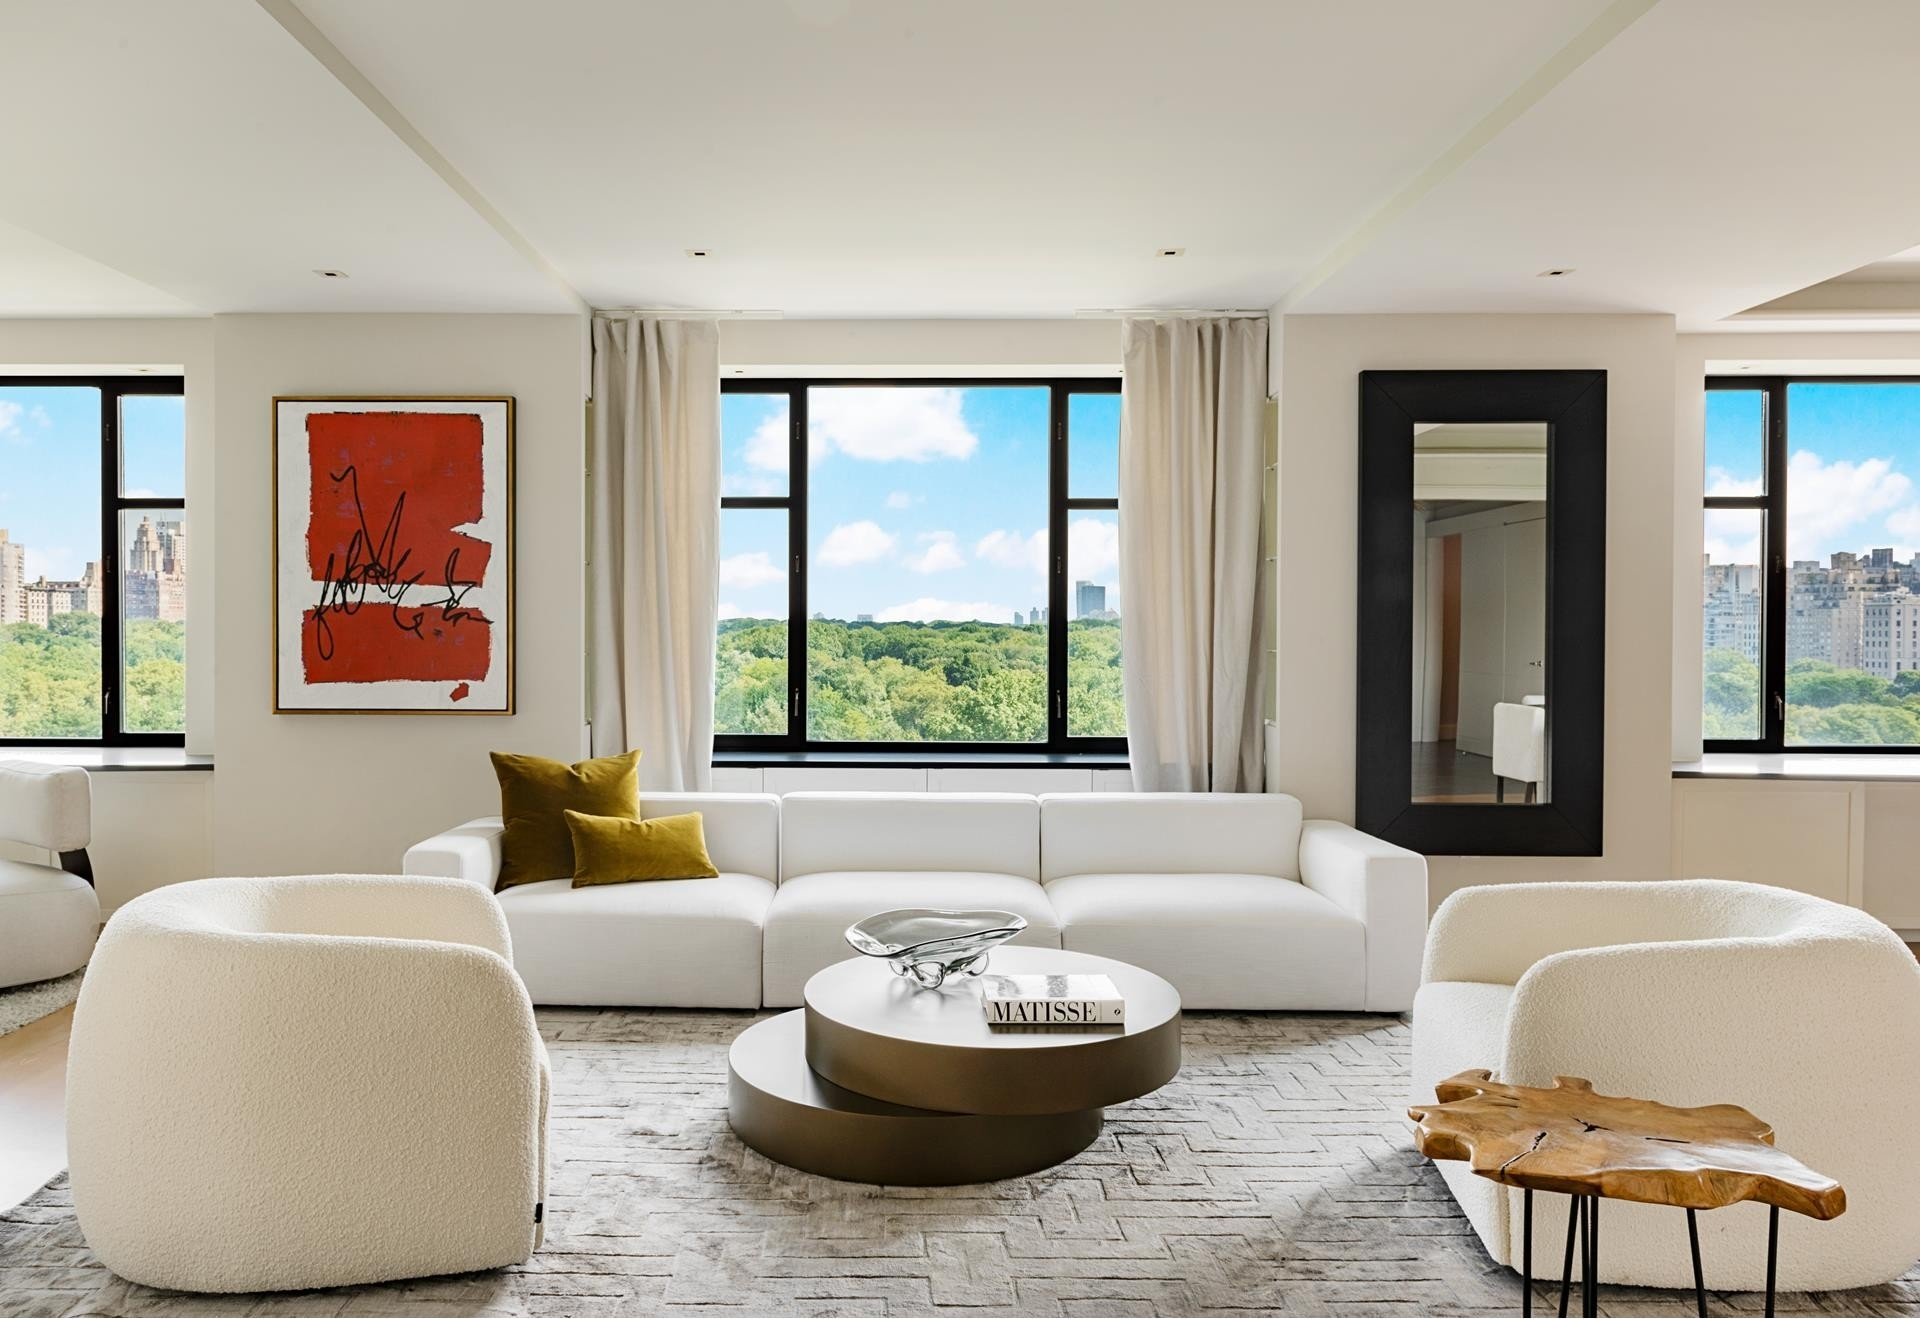 Co-op / Condo for Sale at 110 CENTRAL PARK S, 12AB Central Park South, New York, NY 10019